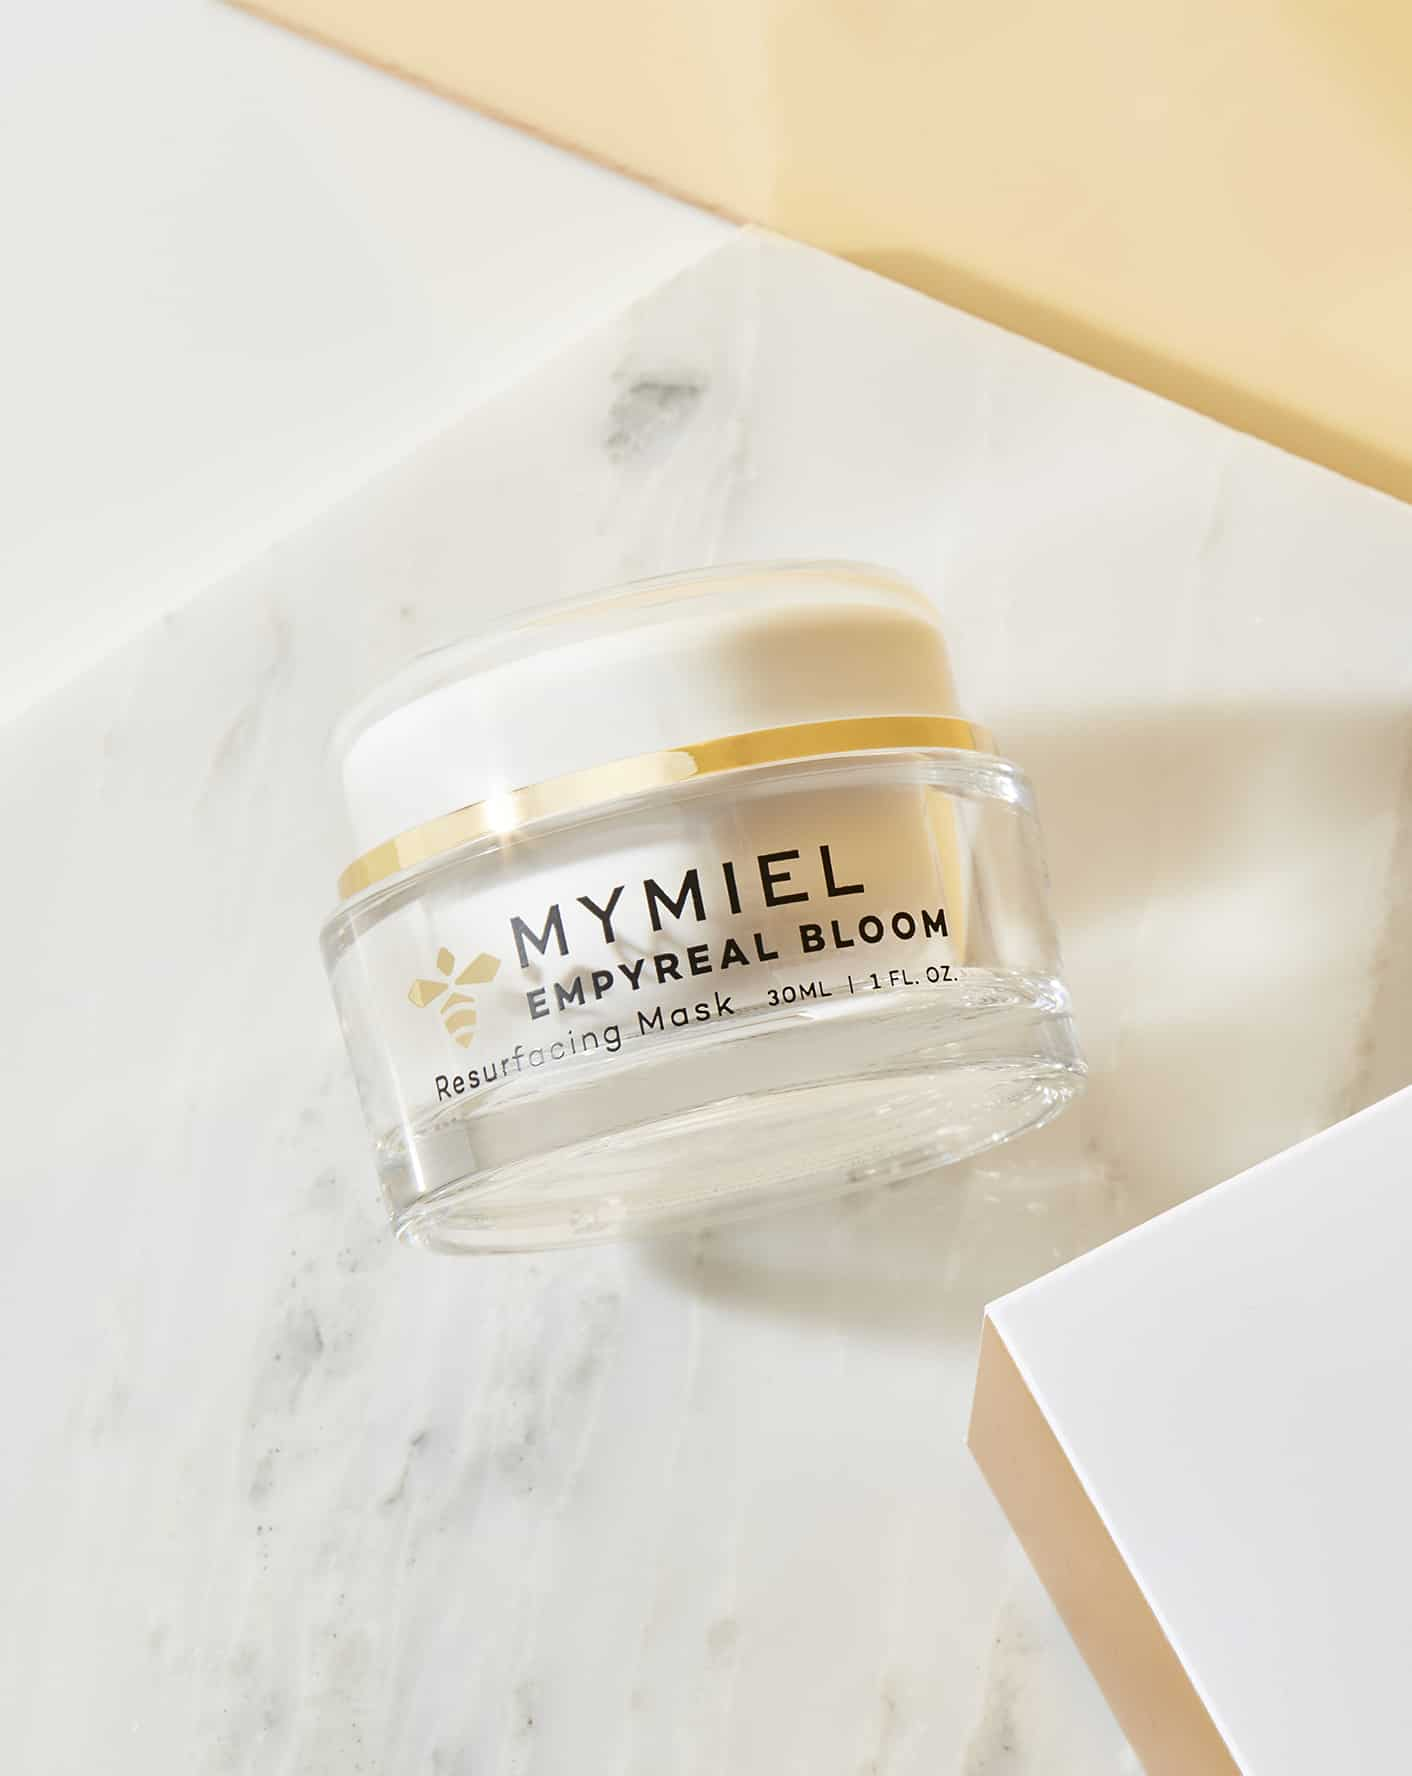 Empyreal-Bloom-Resurfacing-Mask-MyMiel_2019-12-21_mark-weinberg_0186 CROPPED